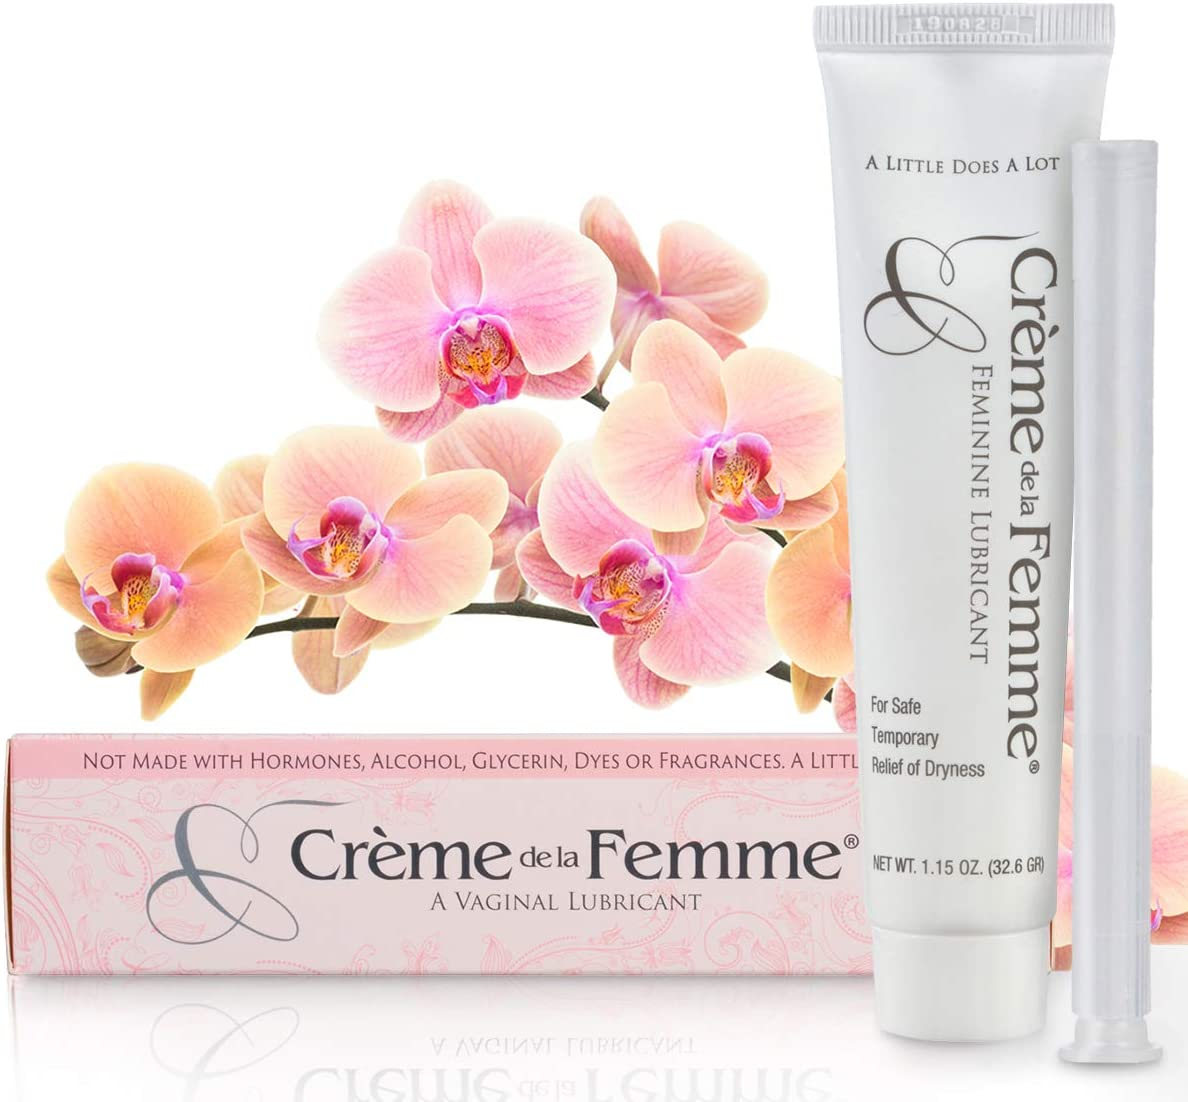 Creme De La Femme Vaginal Lubricant Naturally End Vaginal Dryness: Hormone-Free, Glycerin-Free, Alcohol-Free, Vaginal Dryness Relief, Won't Cause Yeast Infection, Includes Free Applicator (2)